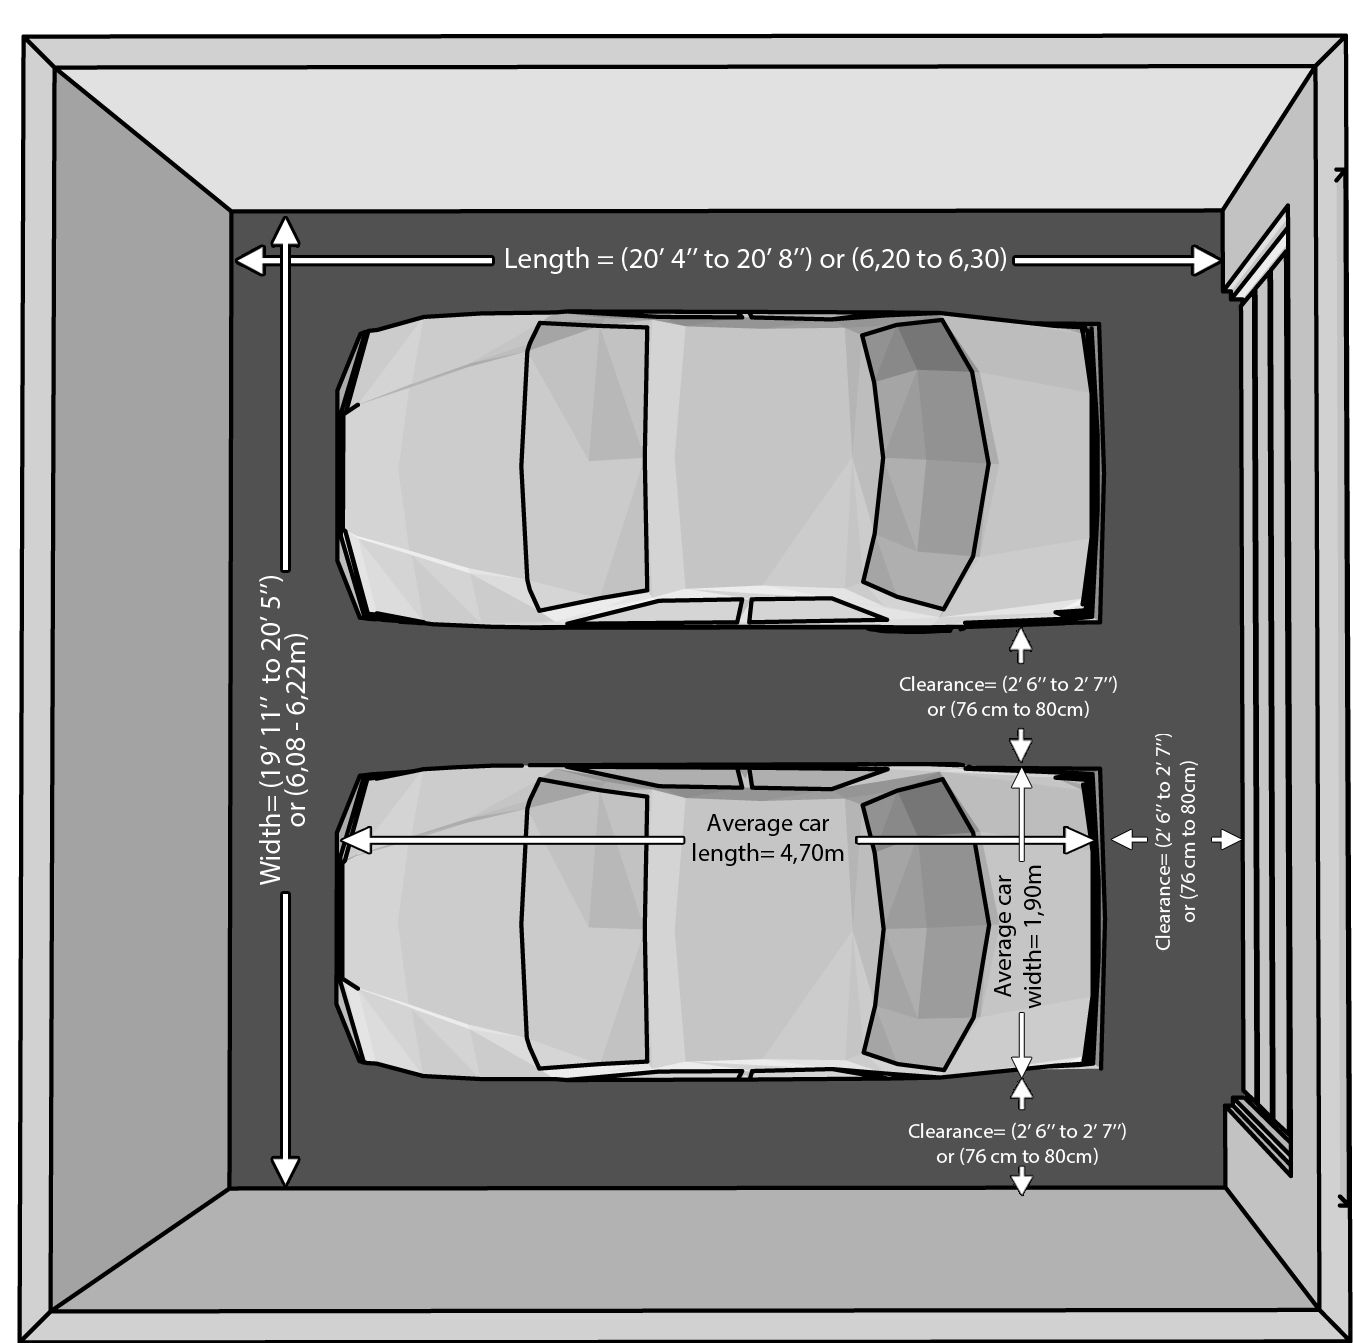 Standard garage door sizes for ergonomic car storage for Standard two car garage size